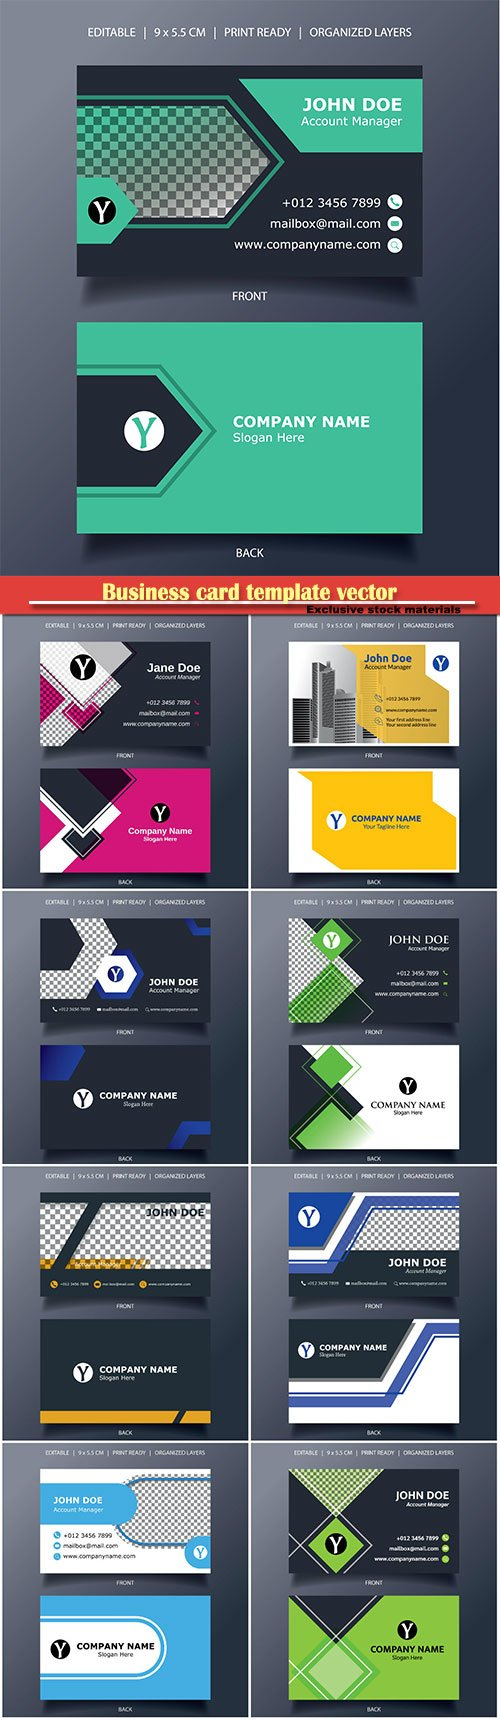 Business card template with blank space for photo